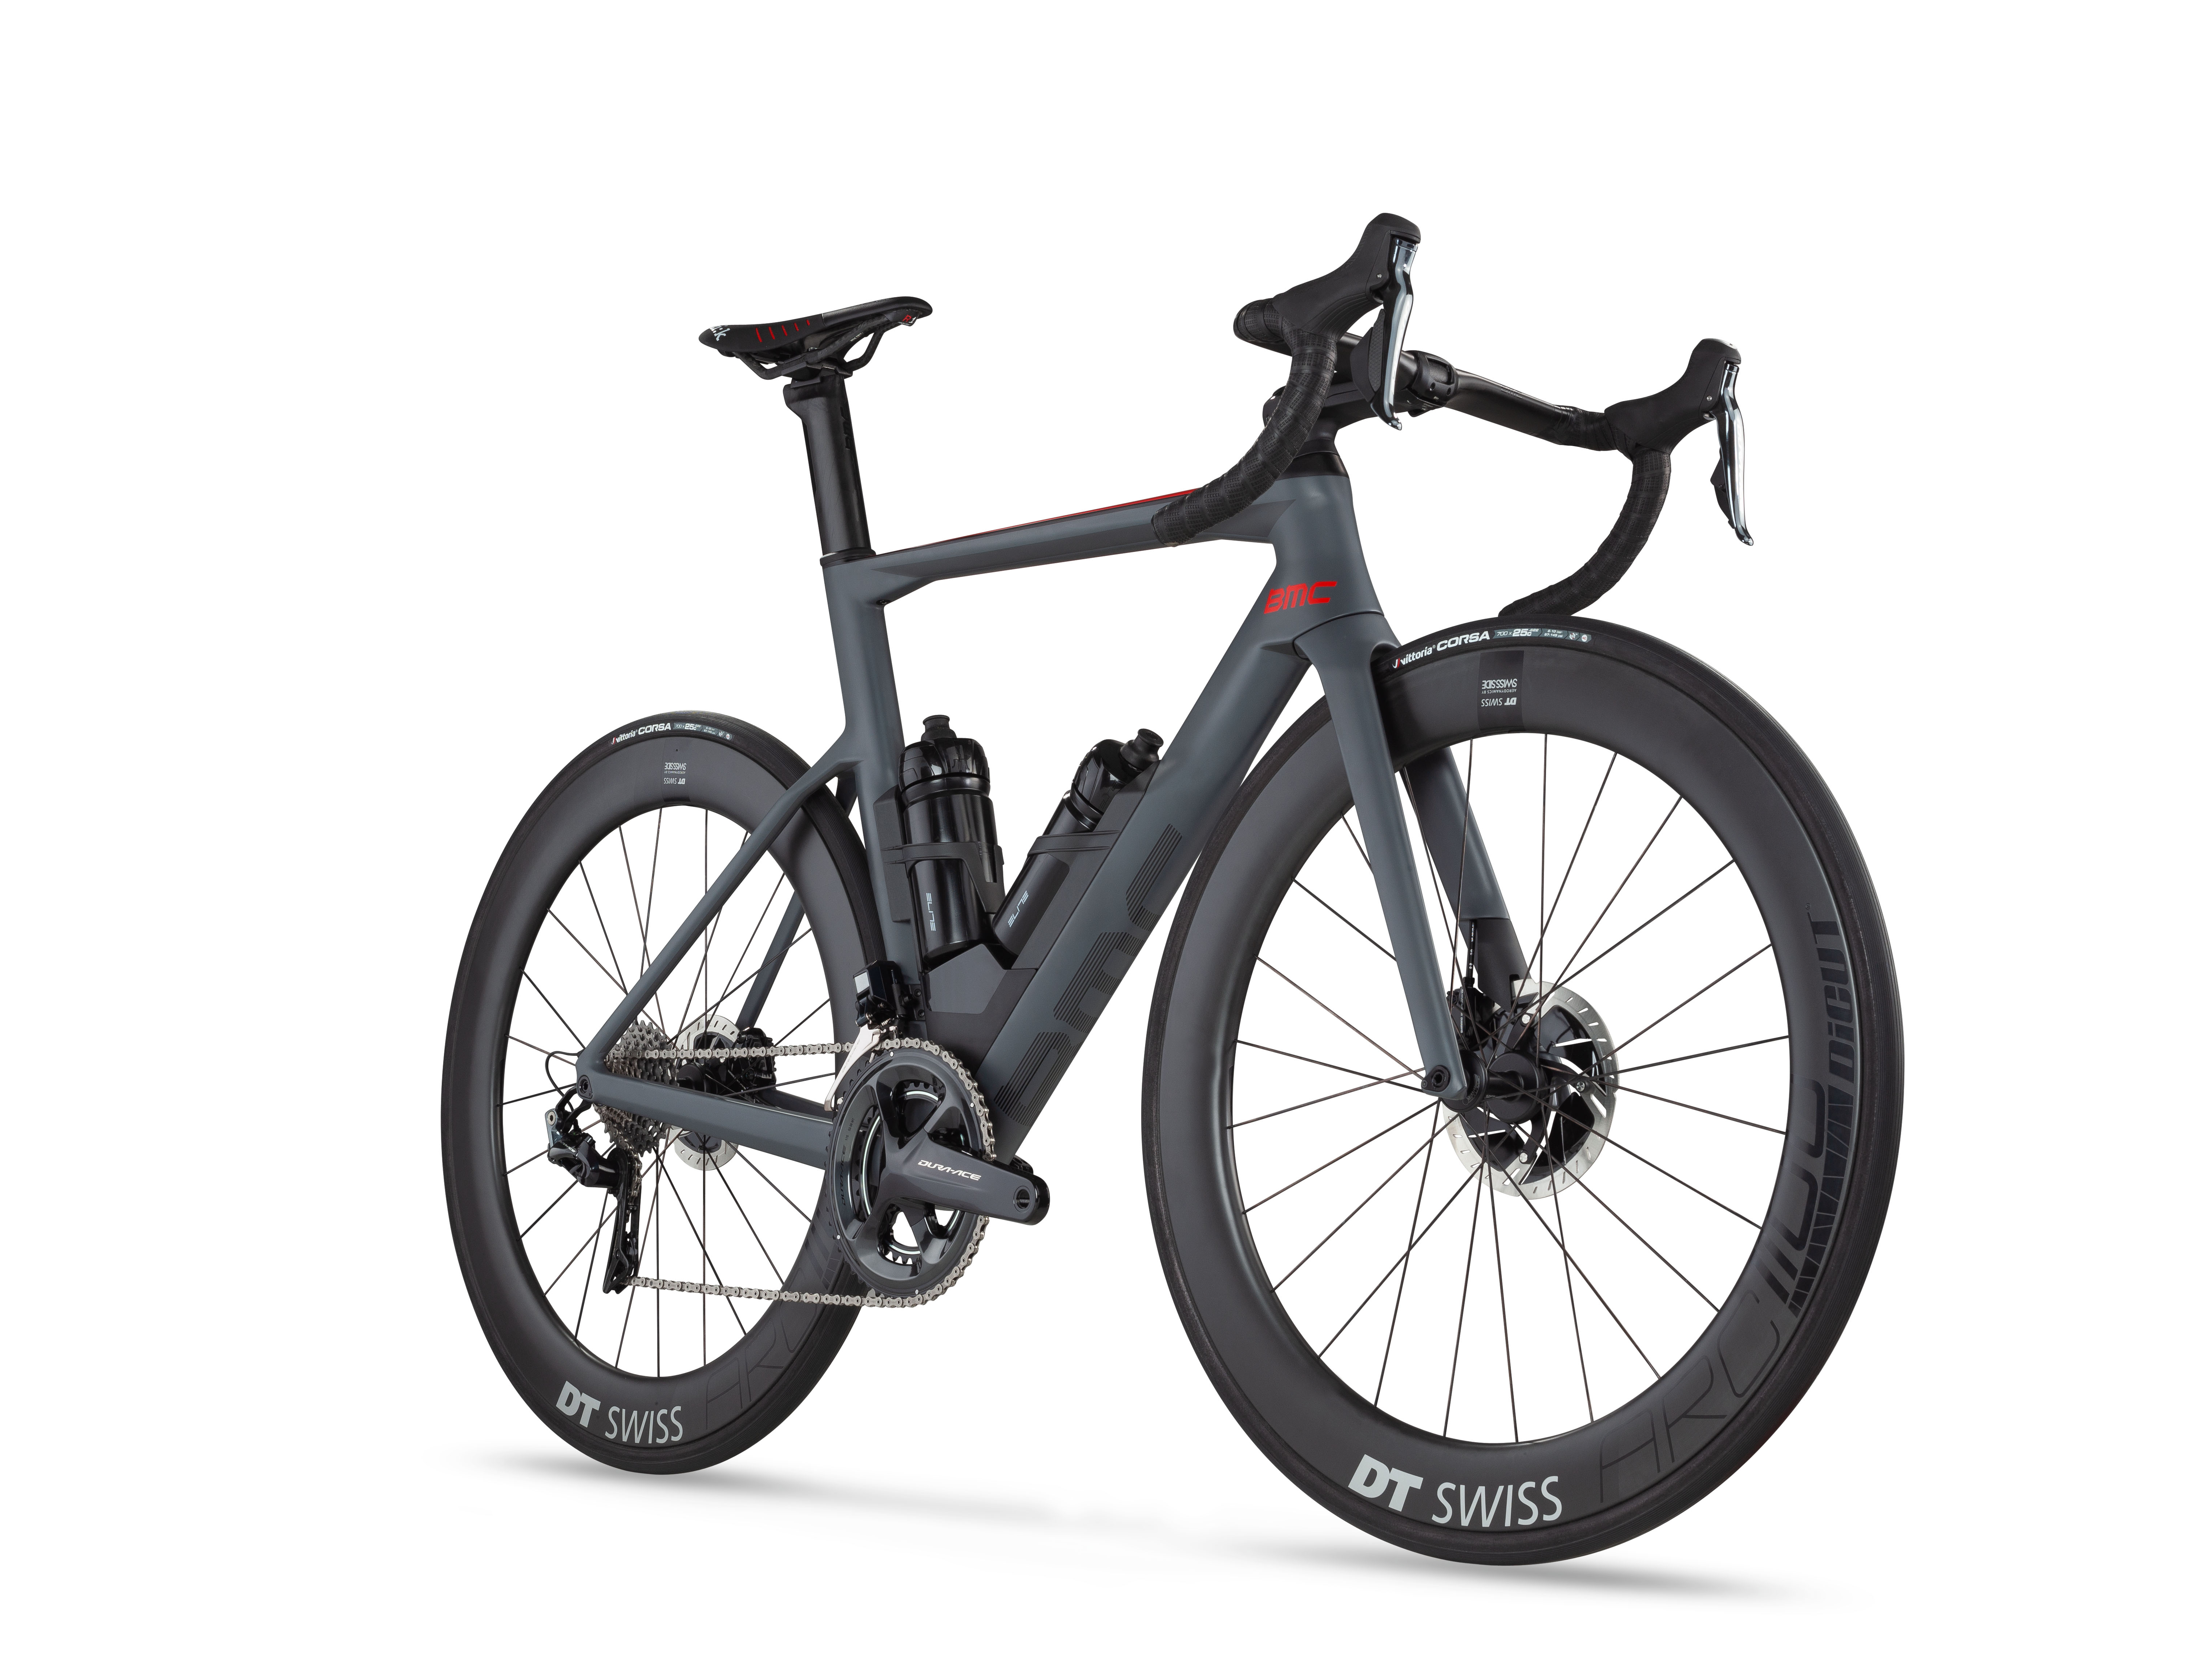 7273d16d6a6 The new BMC Timemachine complete with integrated bottles and storage ...